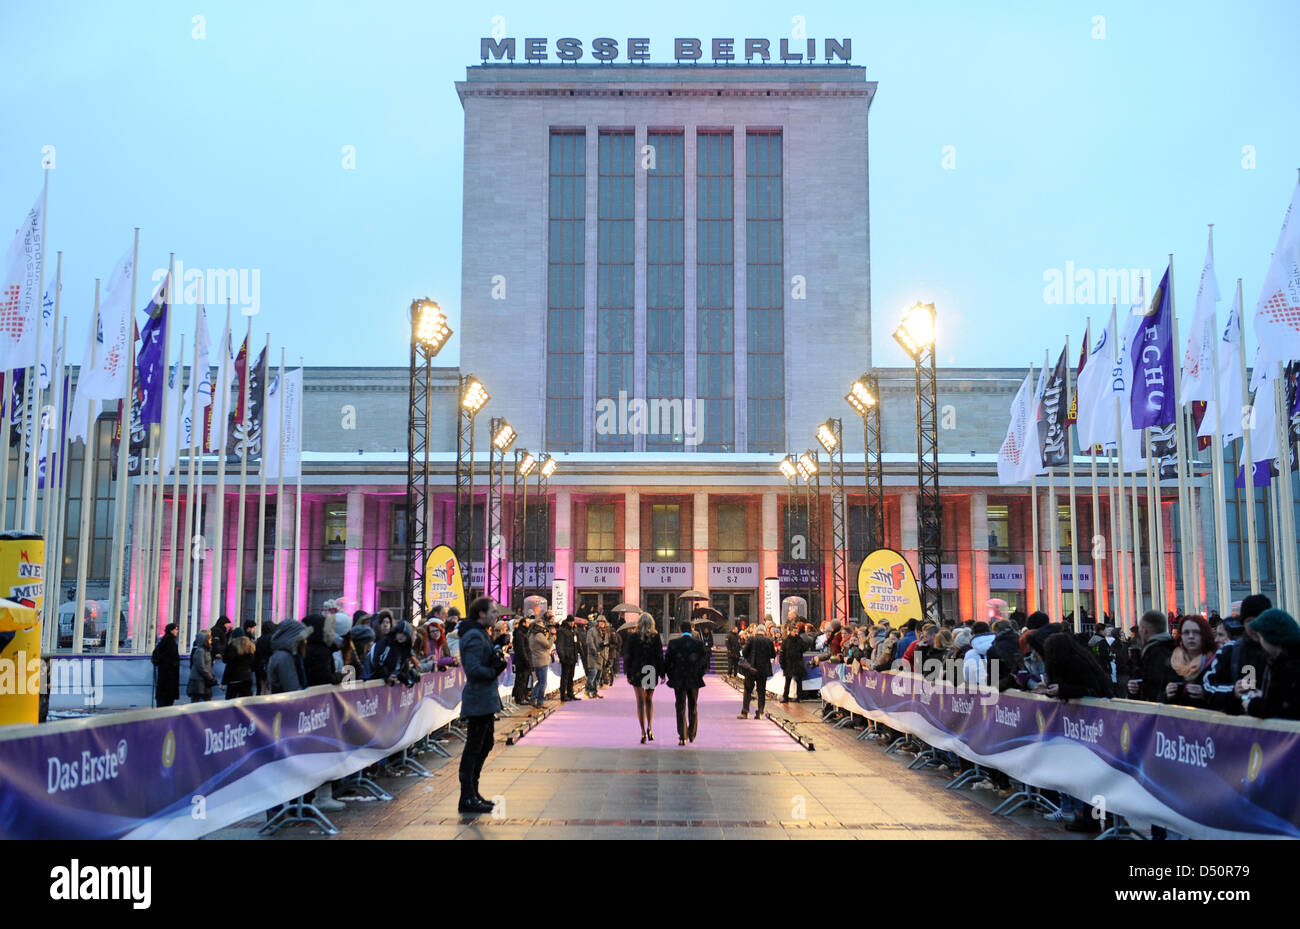 Guests arrive for the 2013 Echo Music Awards in front of the fair ground in Berlin, Germany, 21 March 2013. Photo: - Stock Image